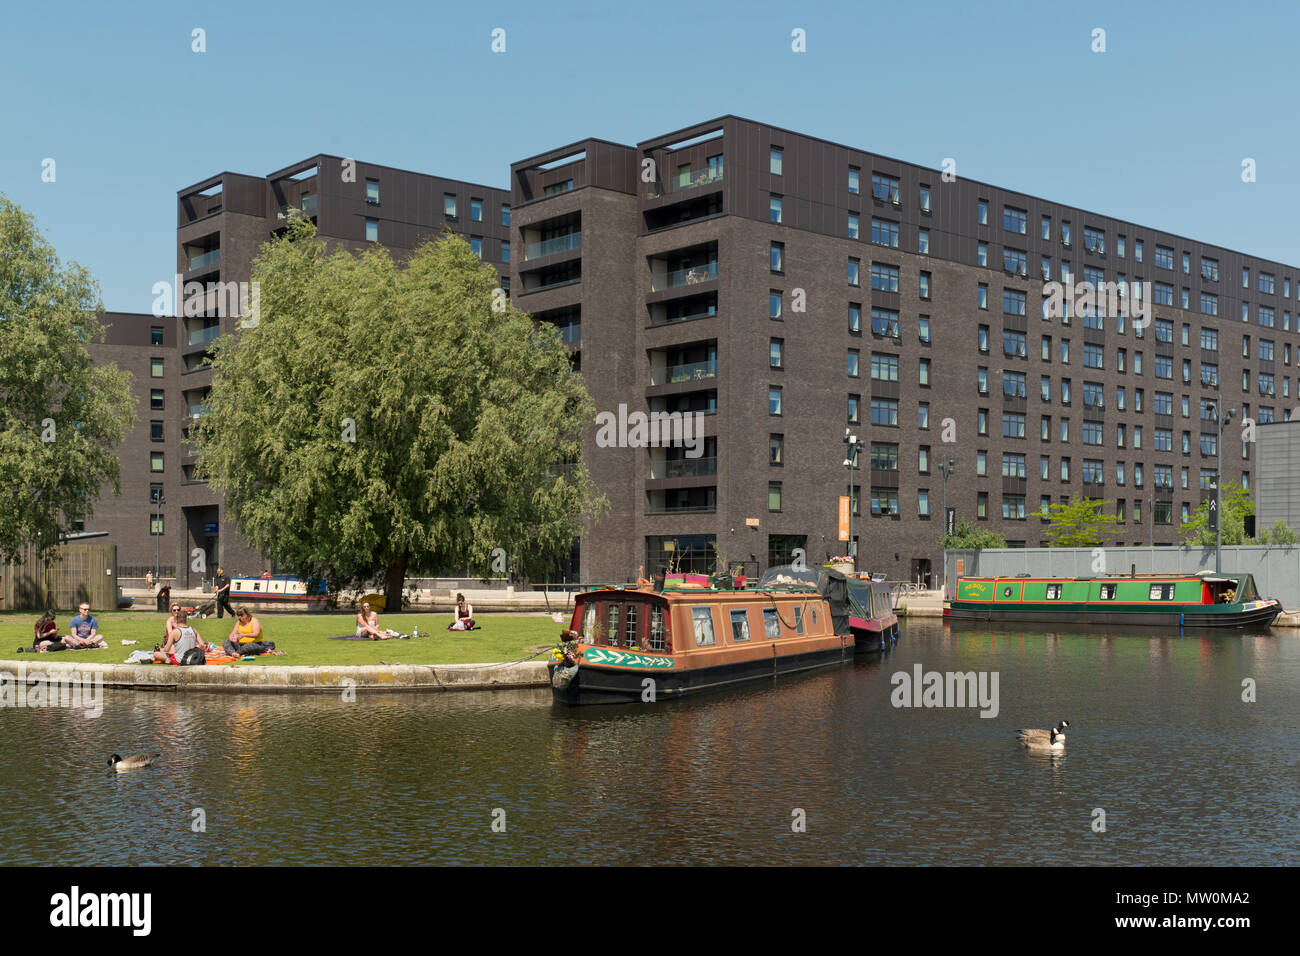 The industrial suburb of New Islington following an extensive regeneration project located in Ancoats, Manchester, UK. - Stock Image